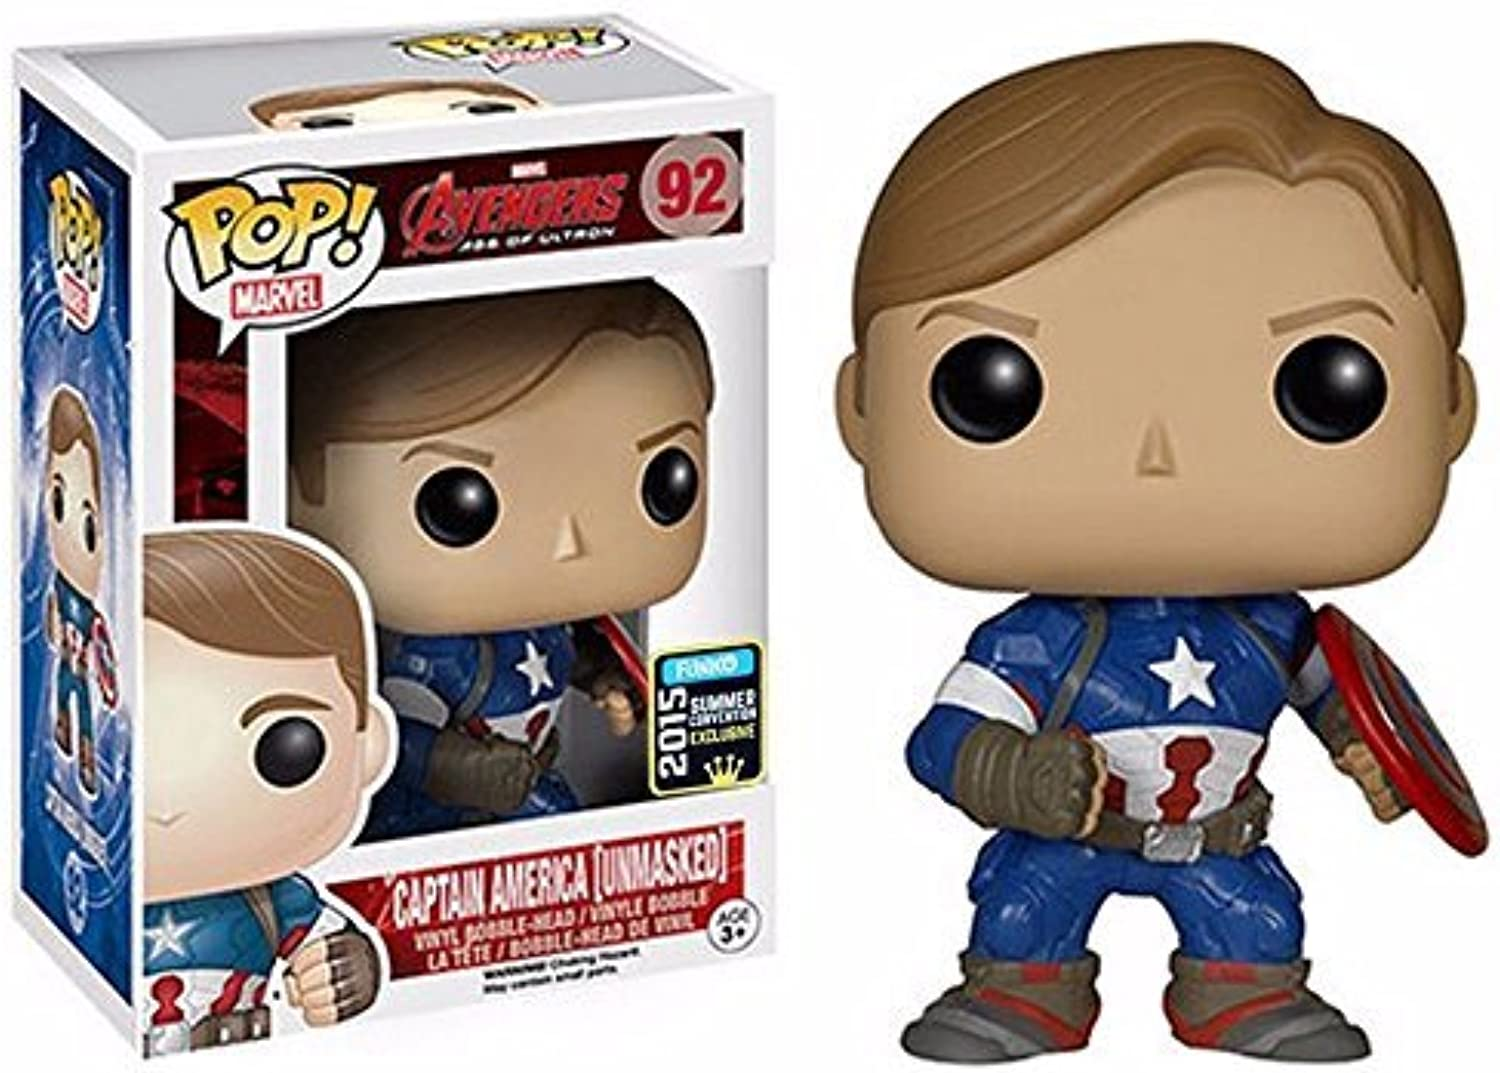 Unmasked Captain America Funko PoP  2015 Convention Exclusive by FunKo